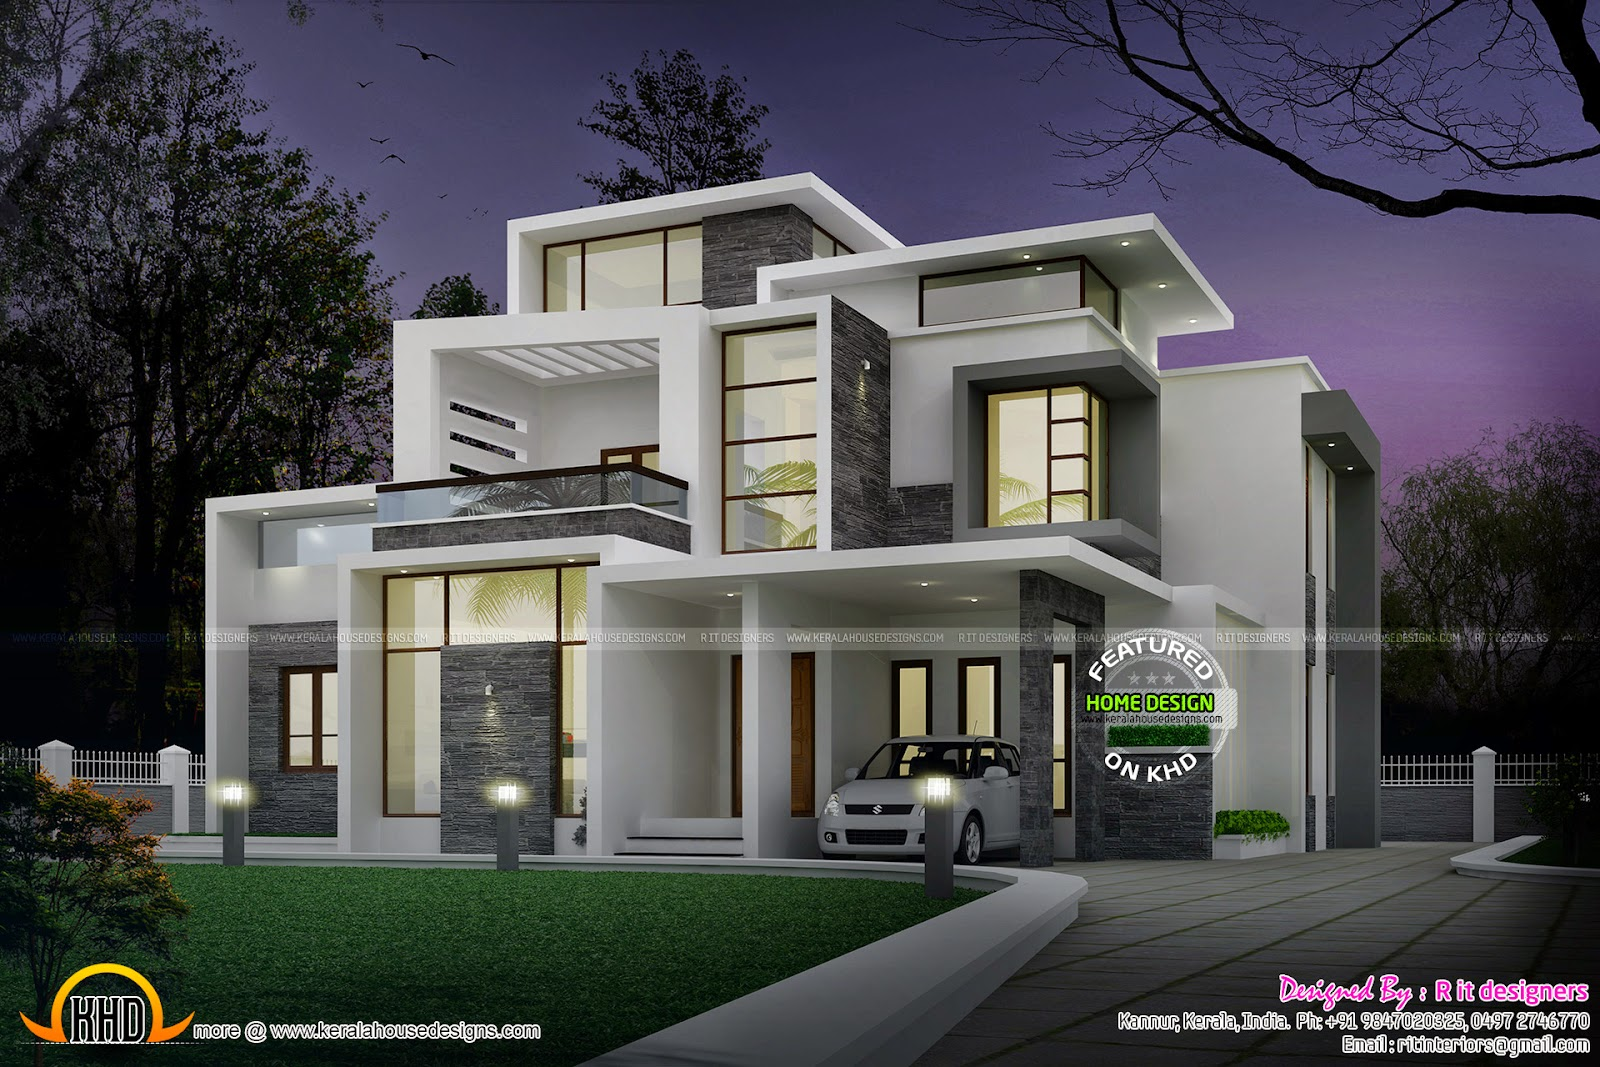 Grand contemporary home design kerala home design and for Blue print homes